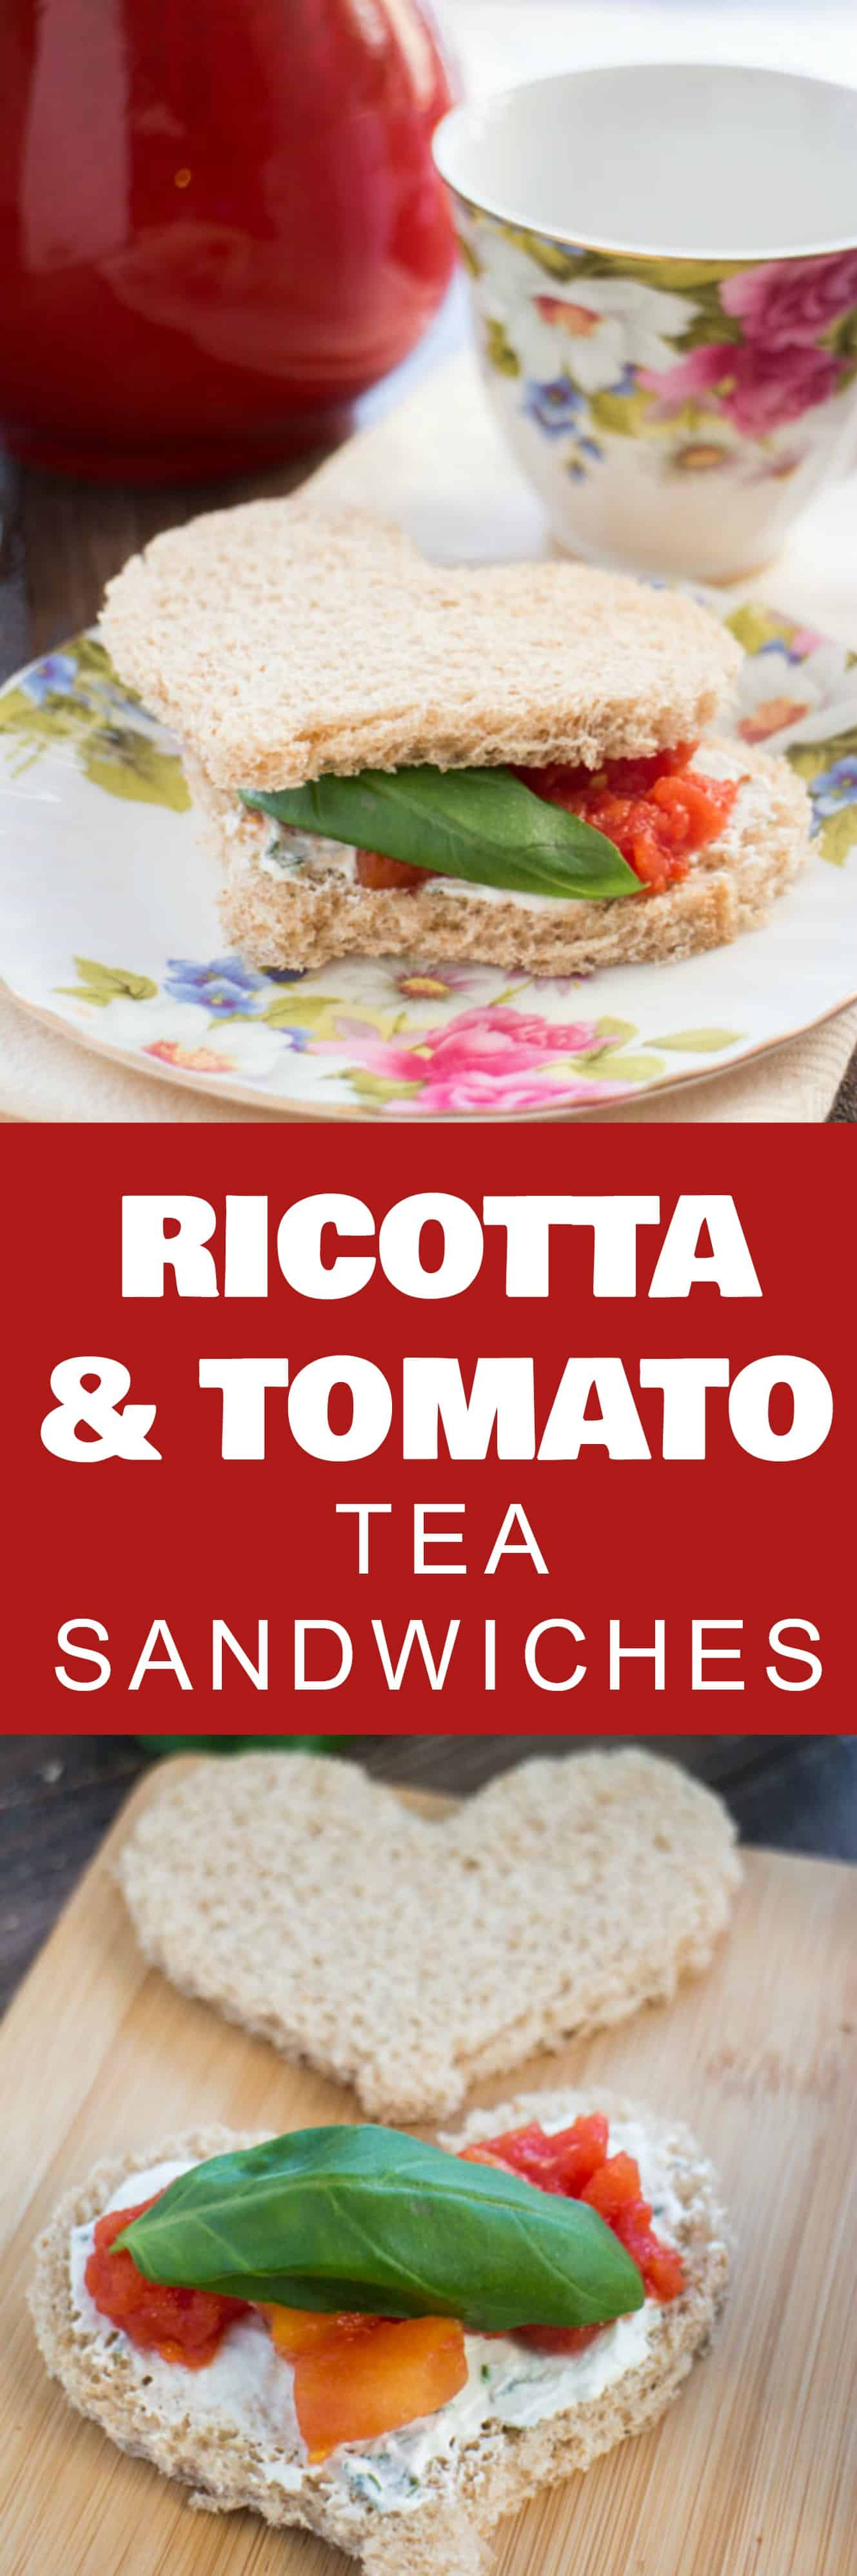 EASY Ricotta and Tomato Tea Sandwiches made with tomatoes and an easy homemade ricotta garlic mixture that tastes amazing! Use cookie cutters to cut out fun shapes in your bread – perfect for an afternoon tea party, baby shower or an every day lunch! As an added plus, these tea sandwiches can be made ahead of time!